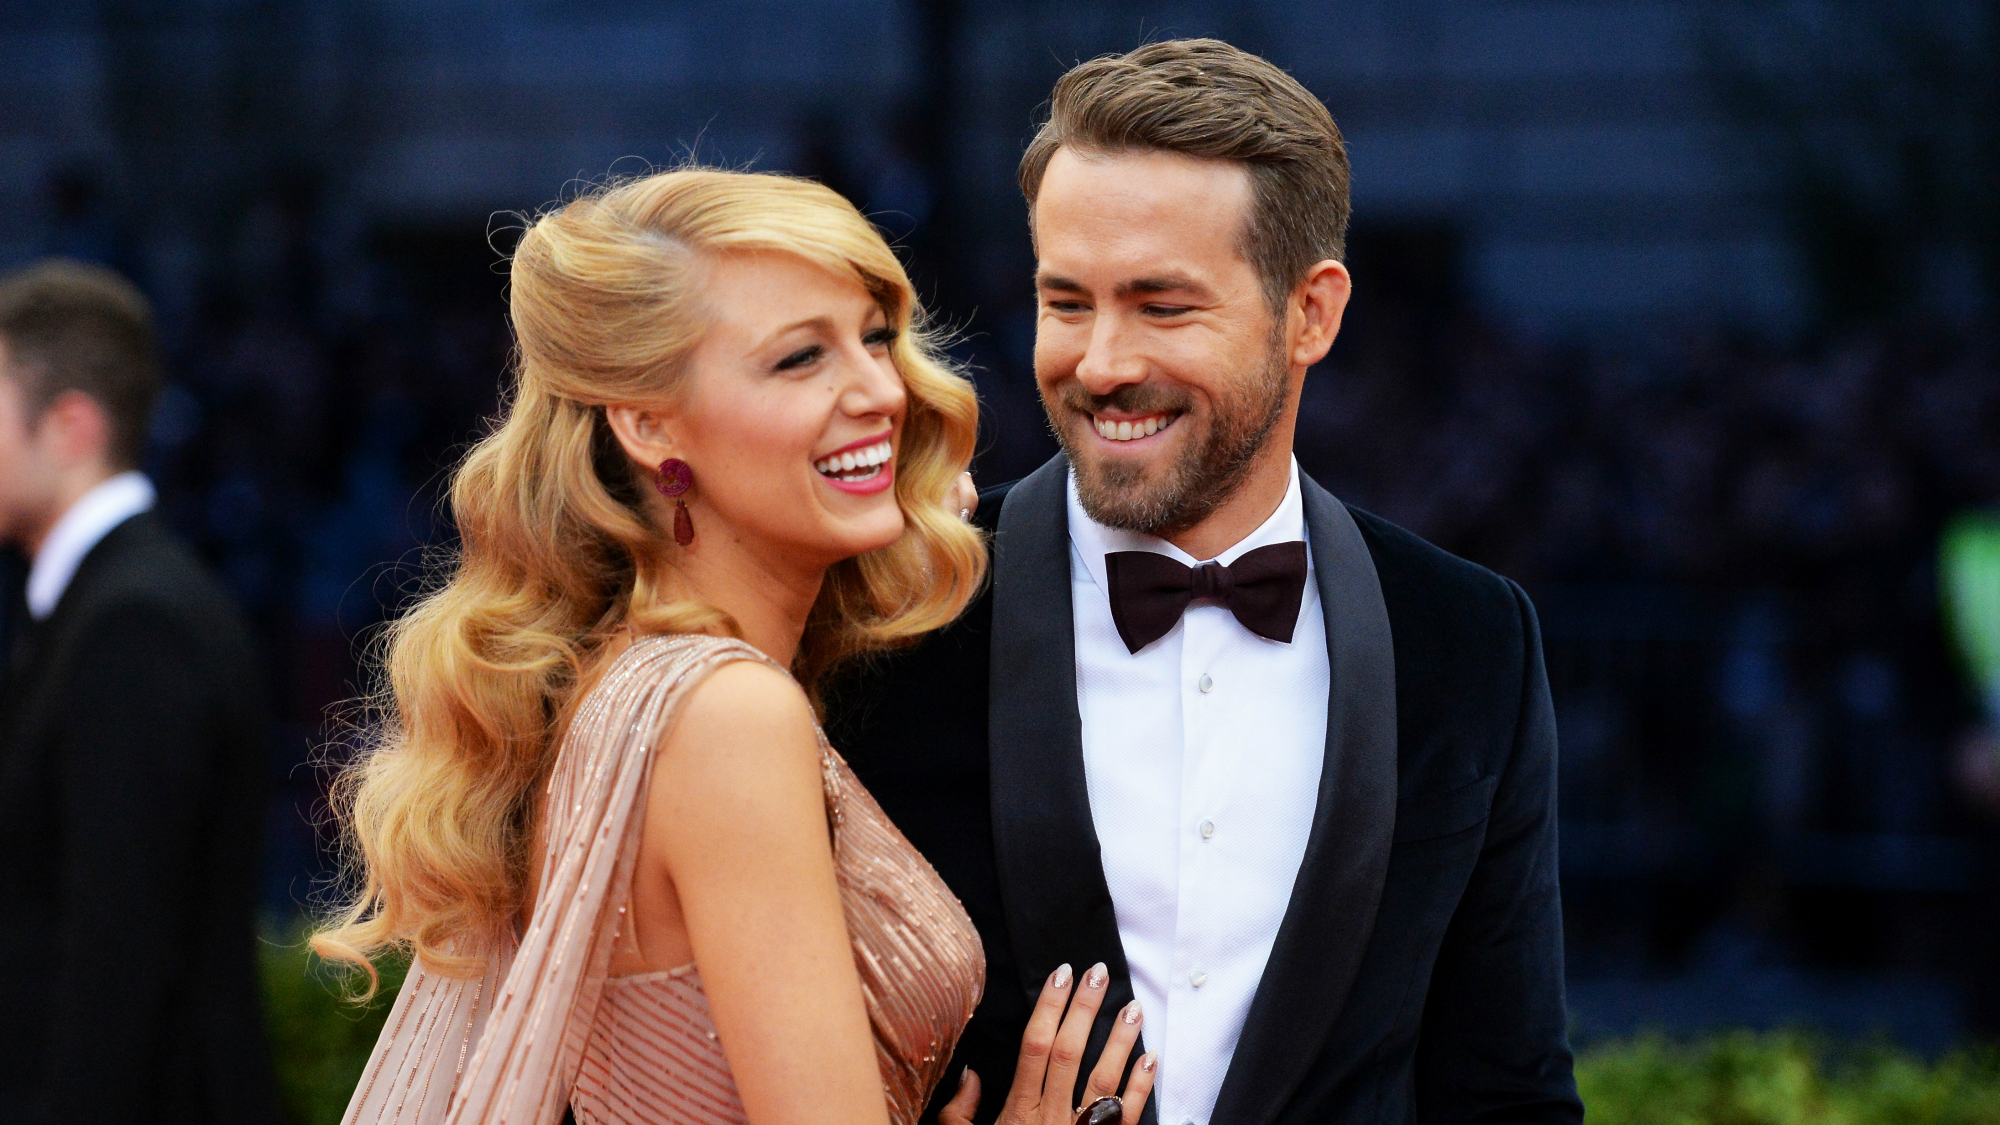 Blake Lively and Ryan Reynolds' wedding photos have been banned on Pinterest